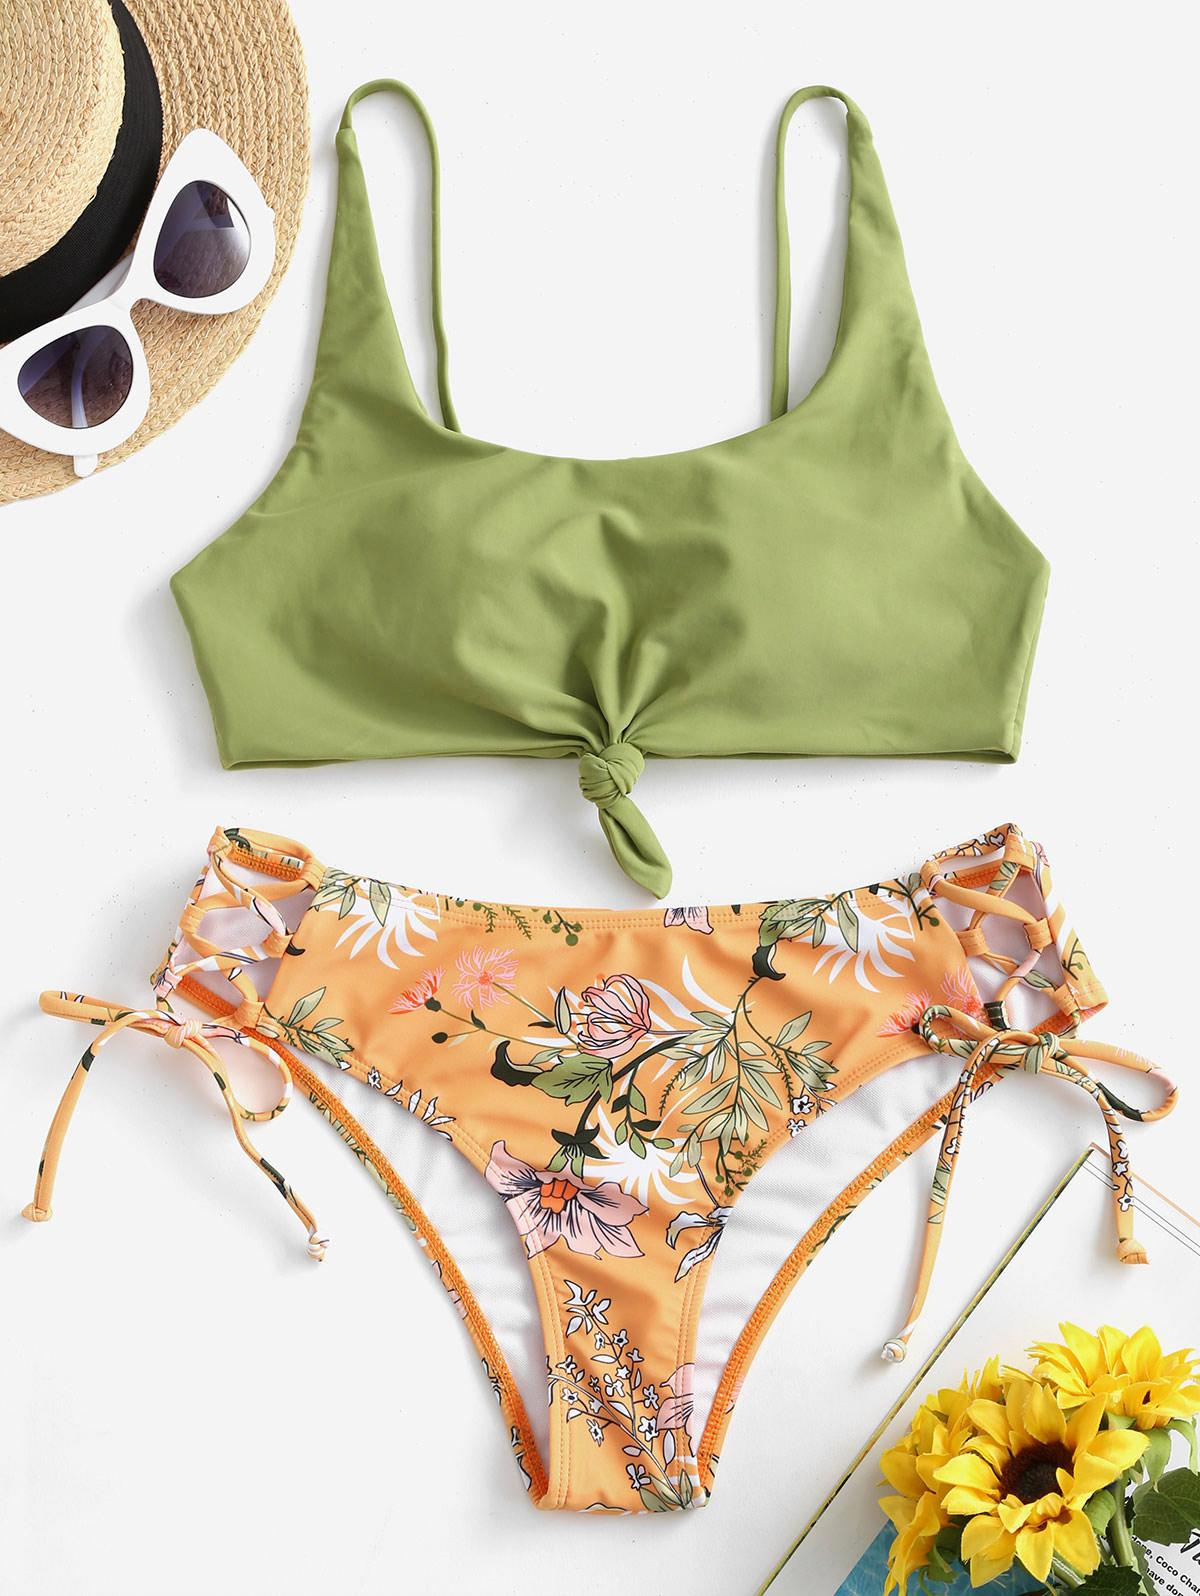 ZAFUL Knot Plant Print Lace-up Bikini Swimsuit фото